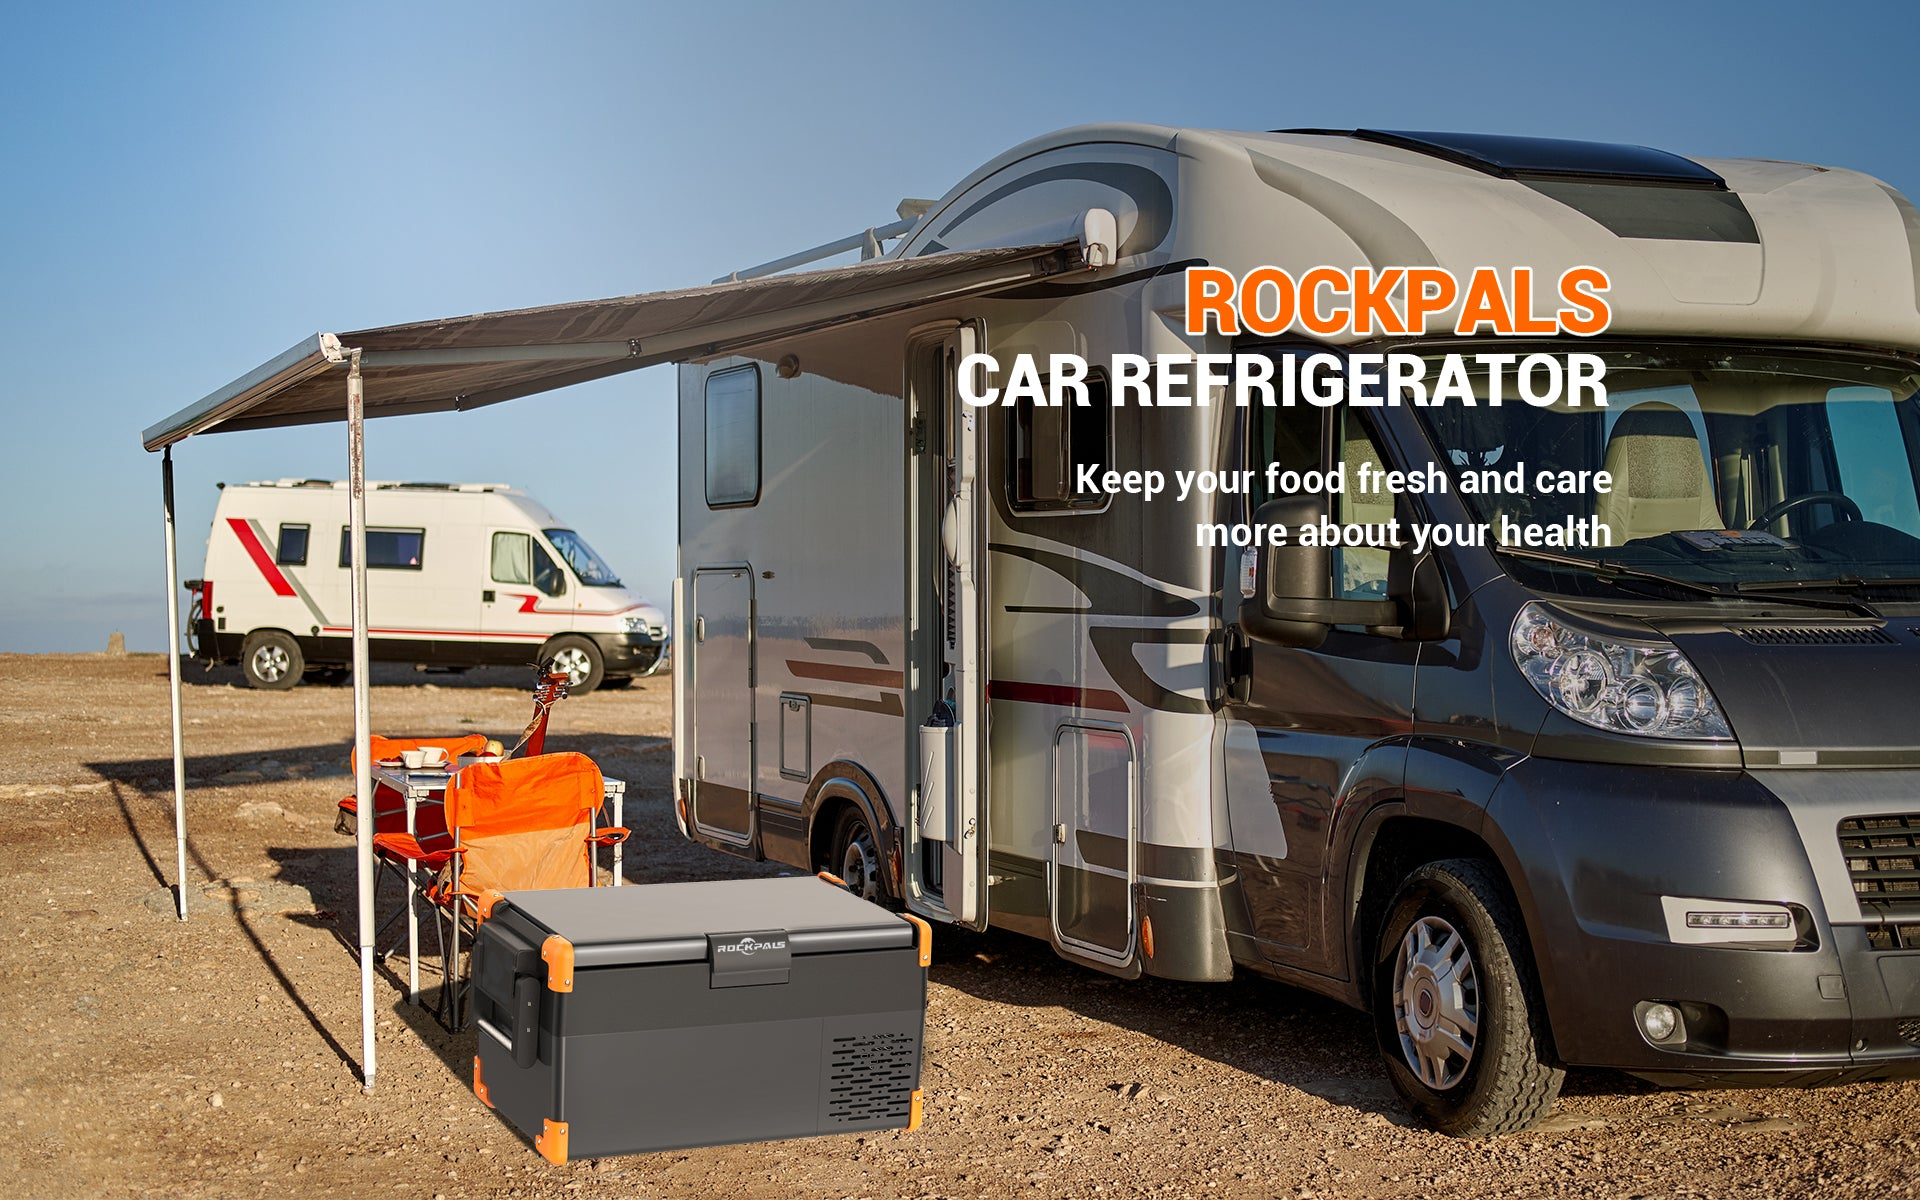 Rockpals 26 Quart Portable RV Refrigerator 01